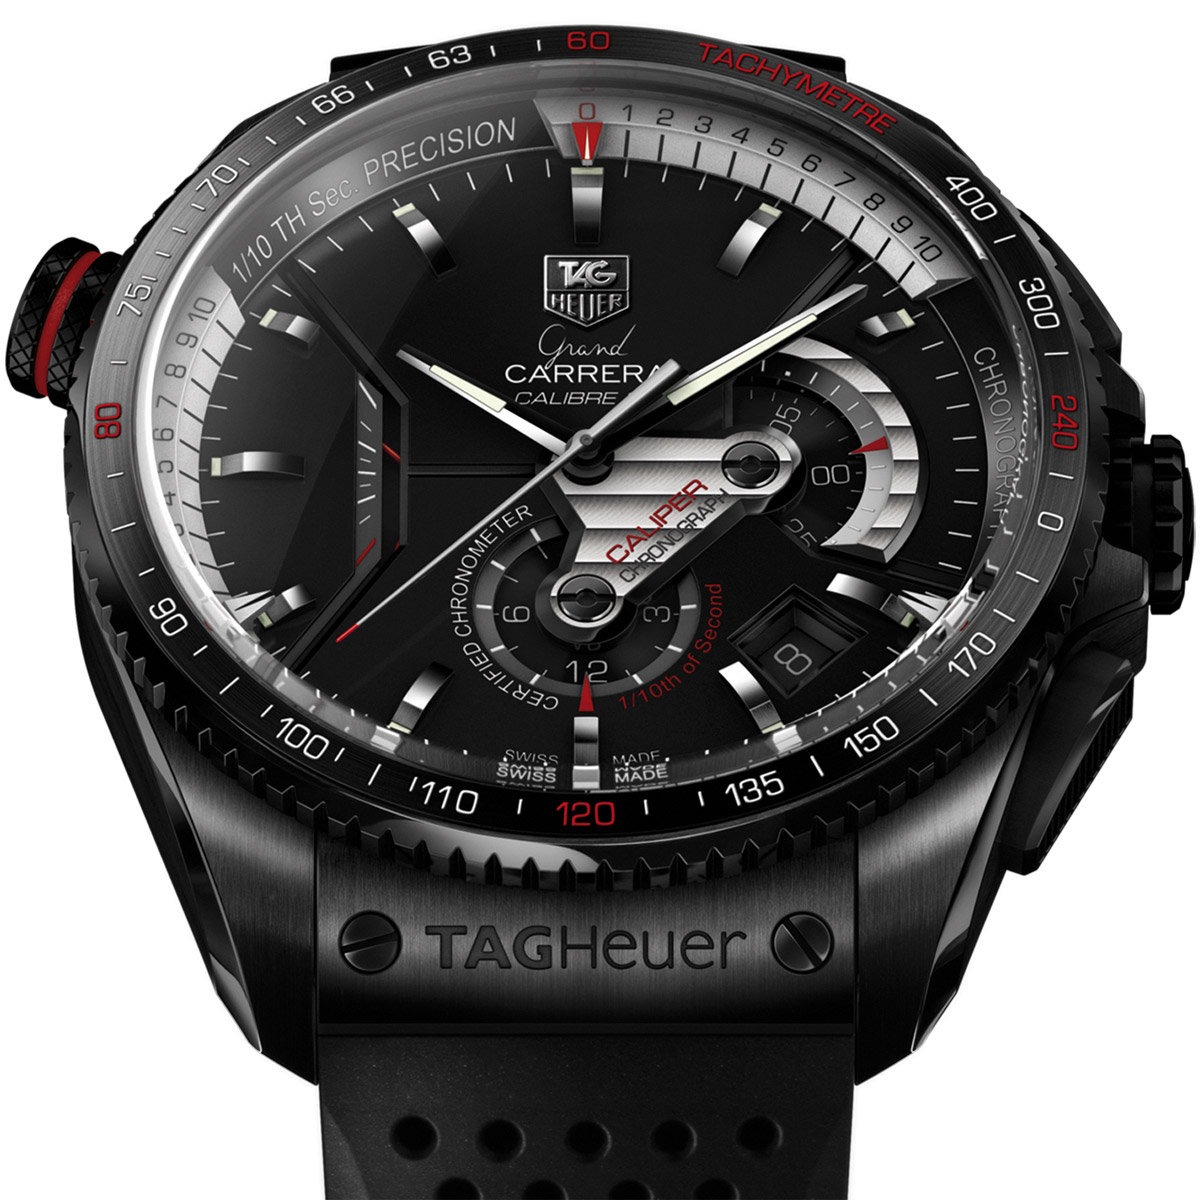 The watch quote photo tag heuer grand carrera calibre 36 rs caliper